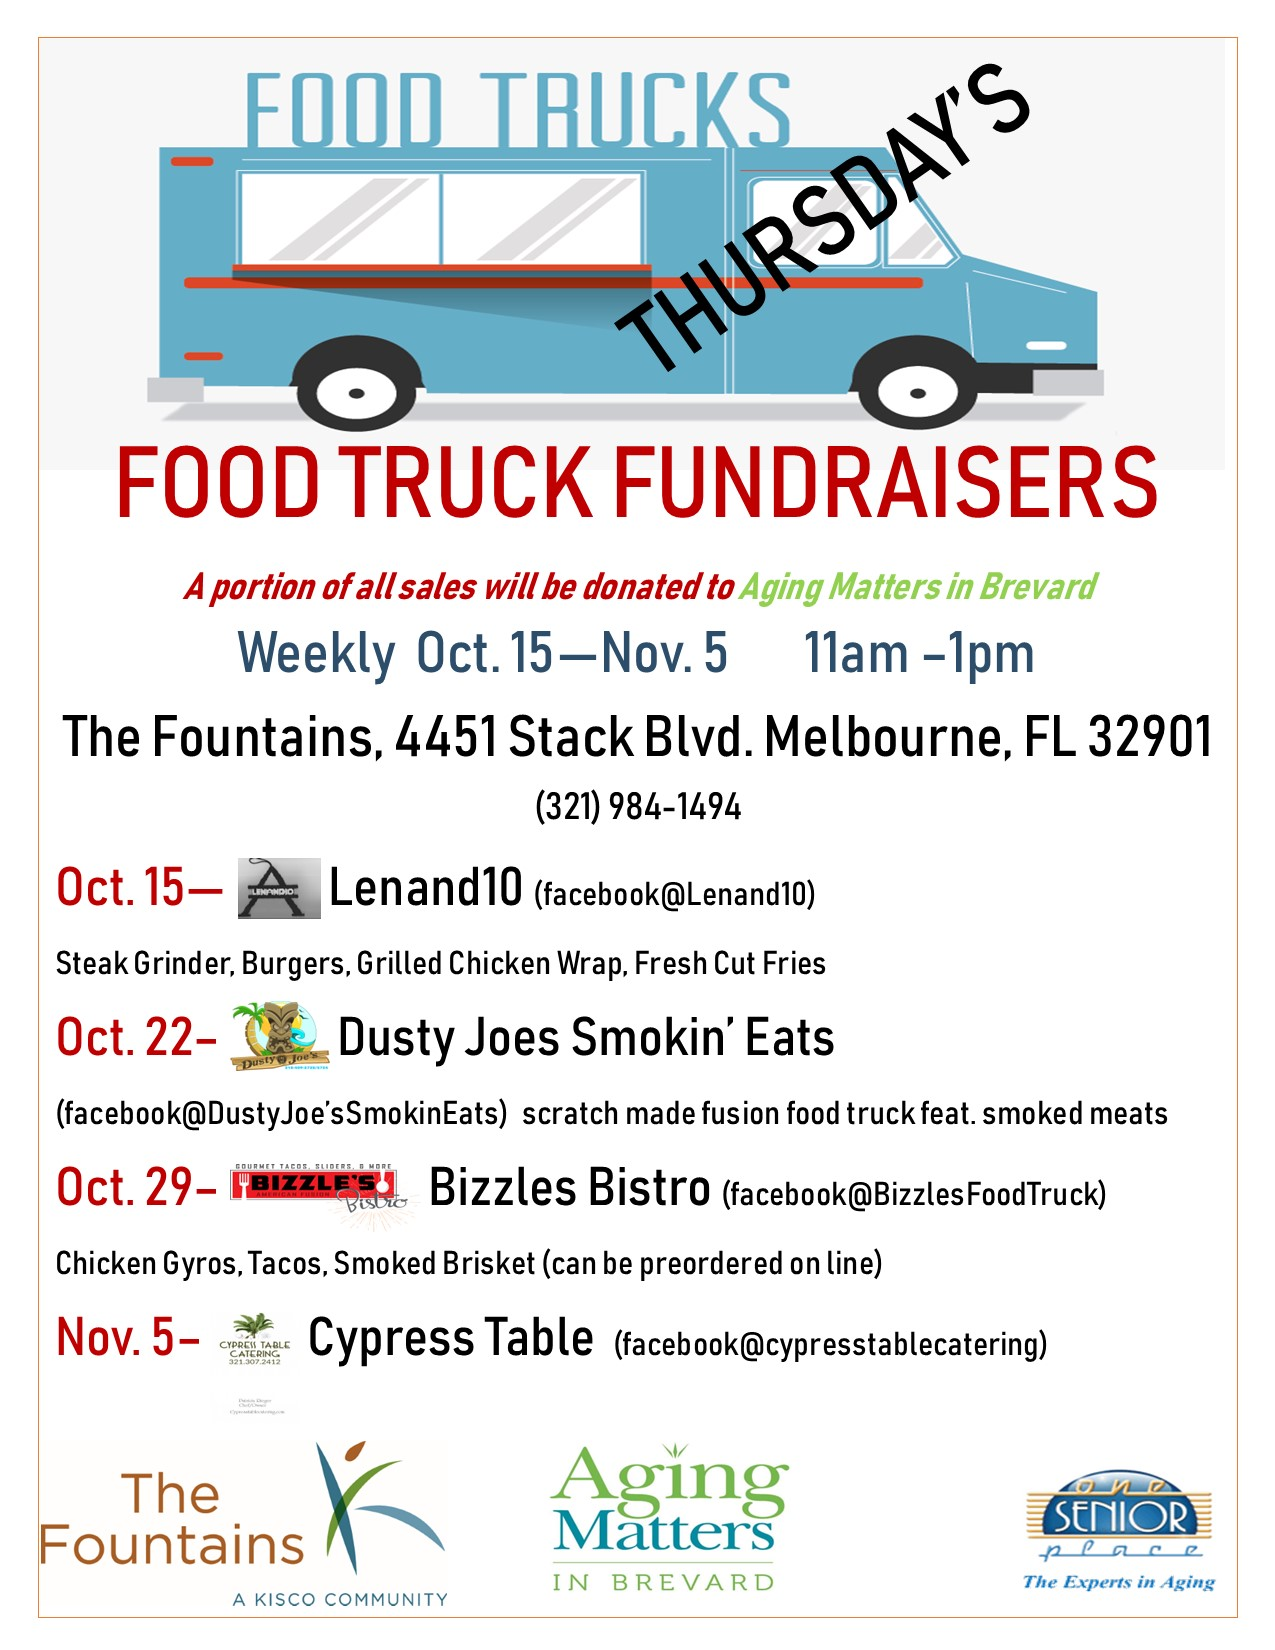 Food Truck Fundraisers at The Fountains